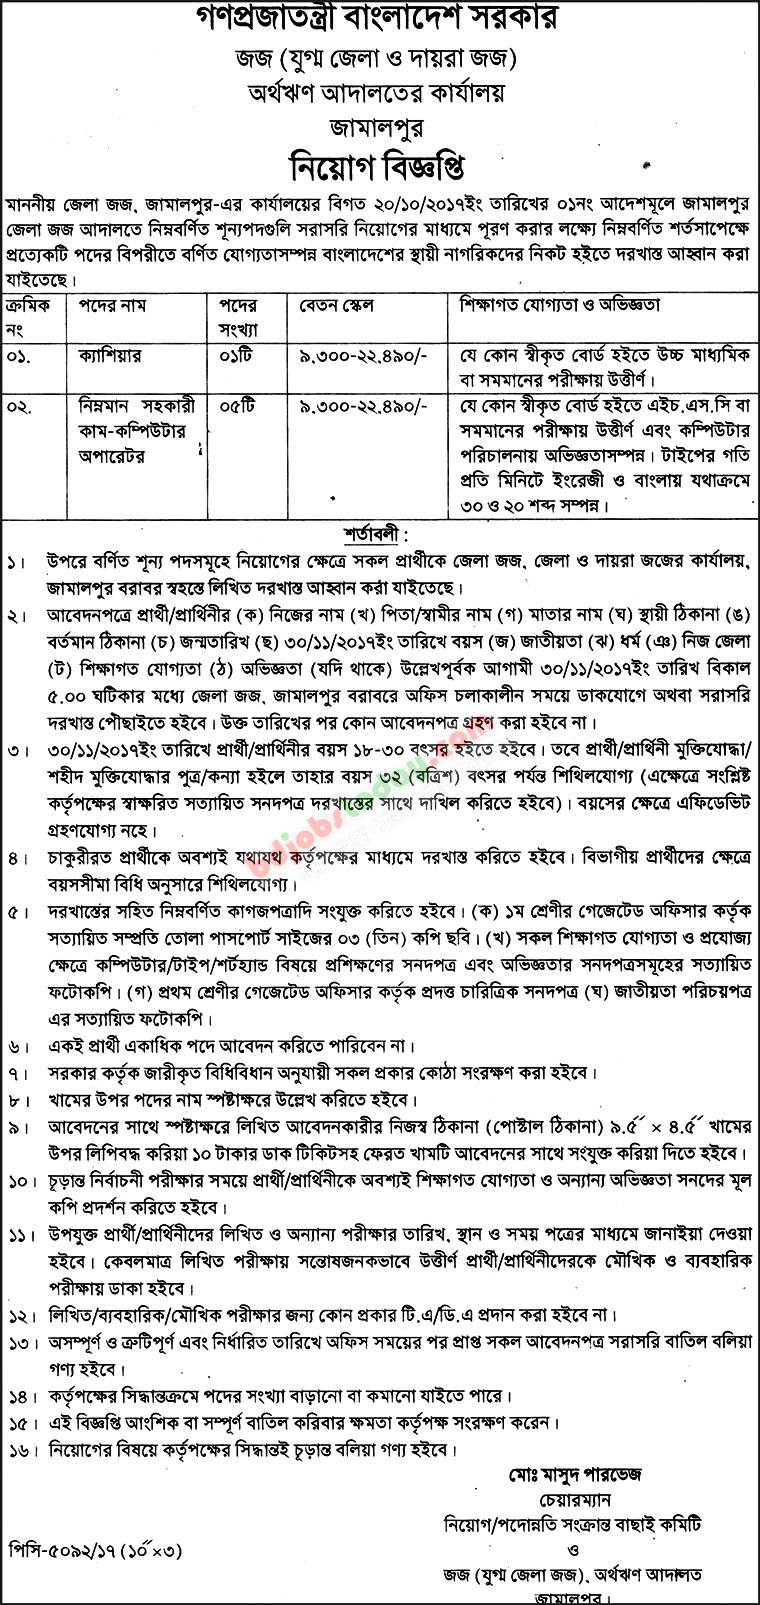 Office of Finance Loan Court, Jamalpur jobs